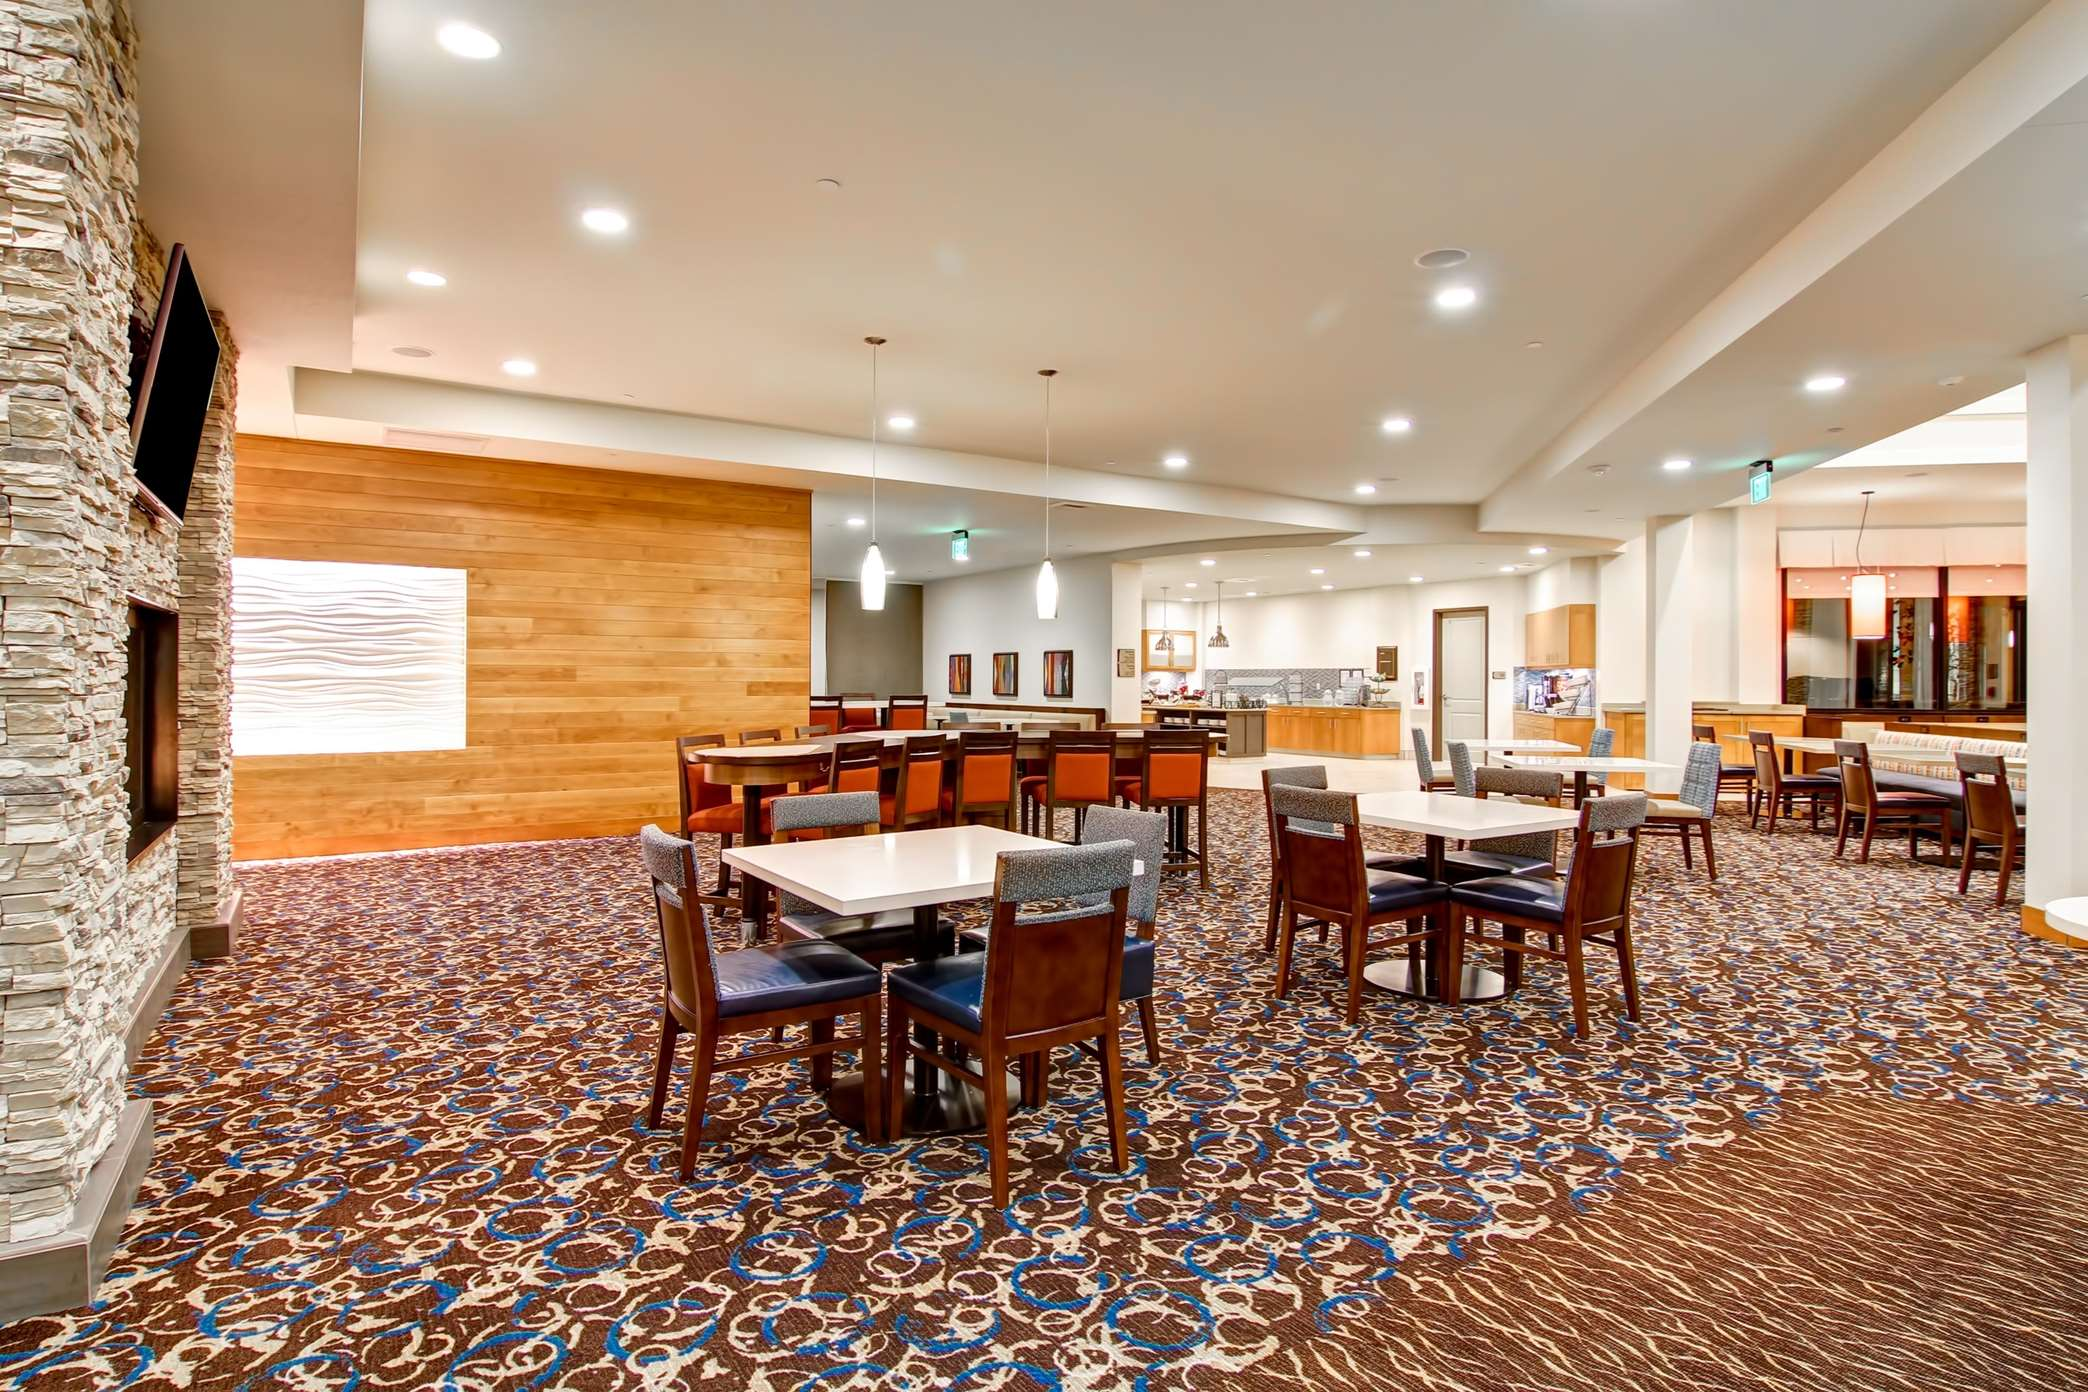 Homewood Suites by Hilton Seattle-Issaquah image 6